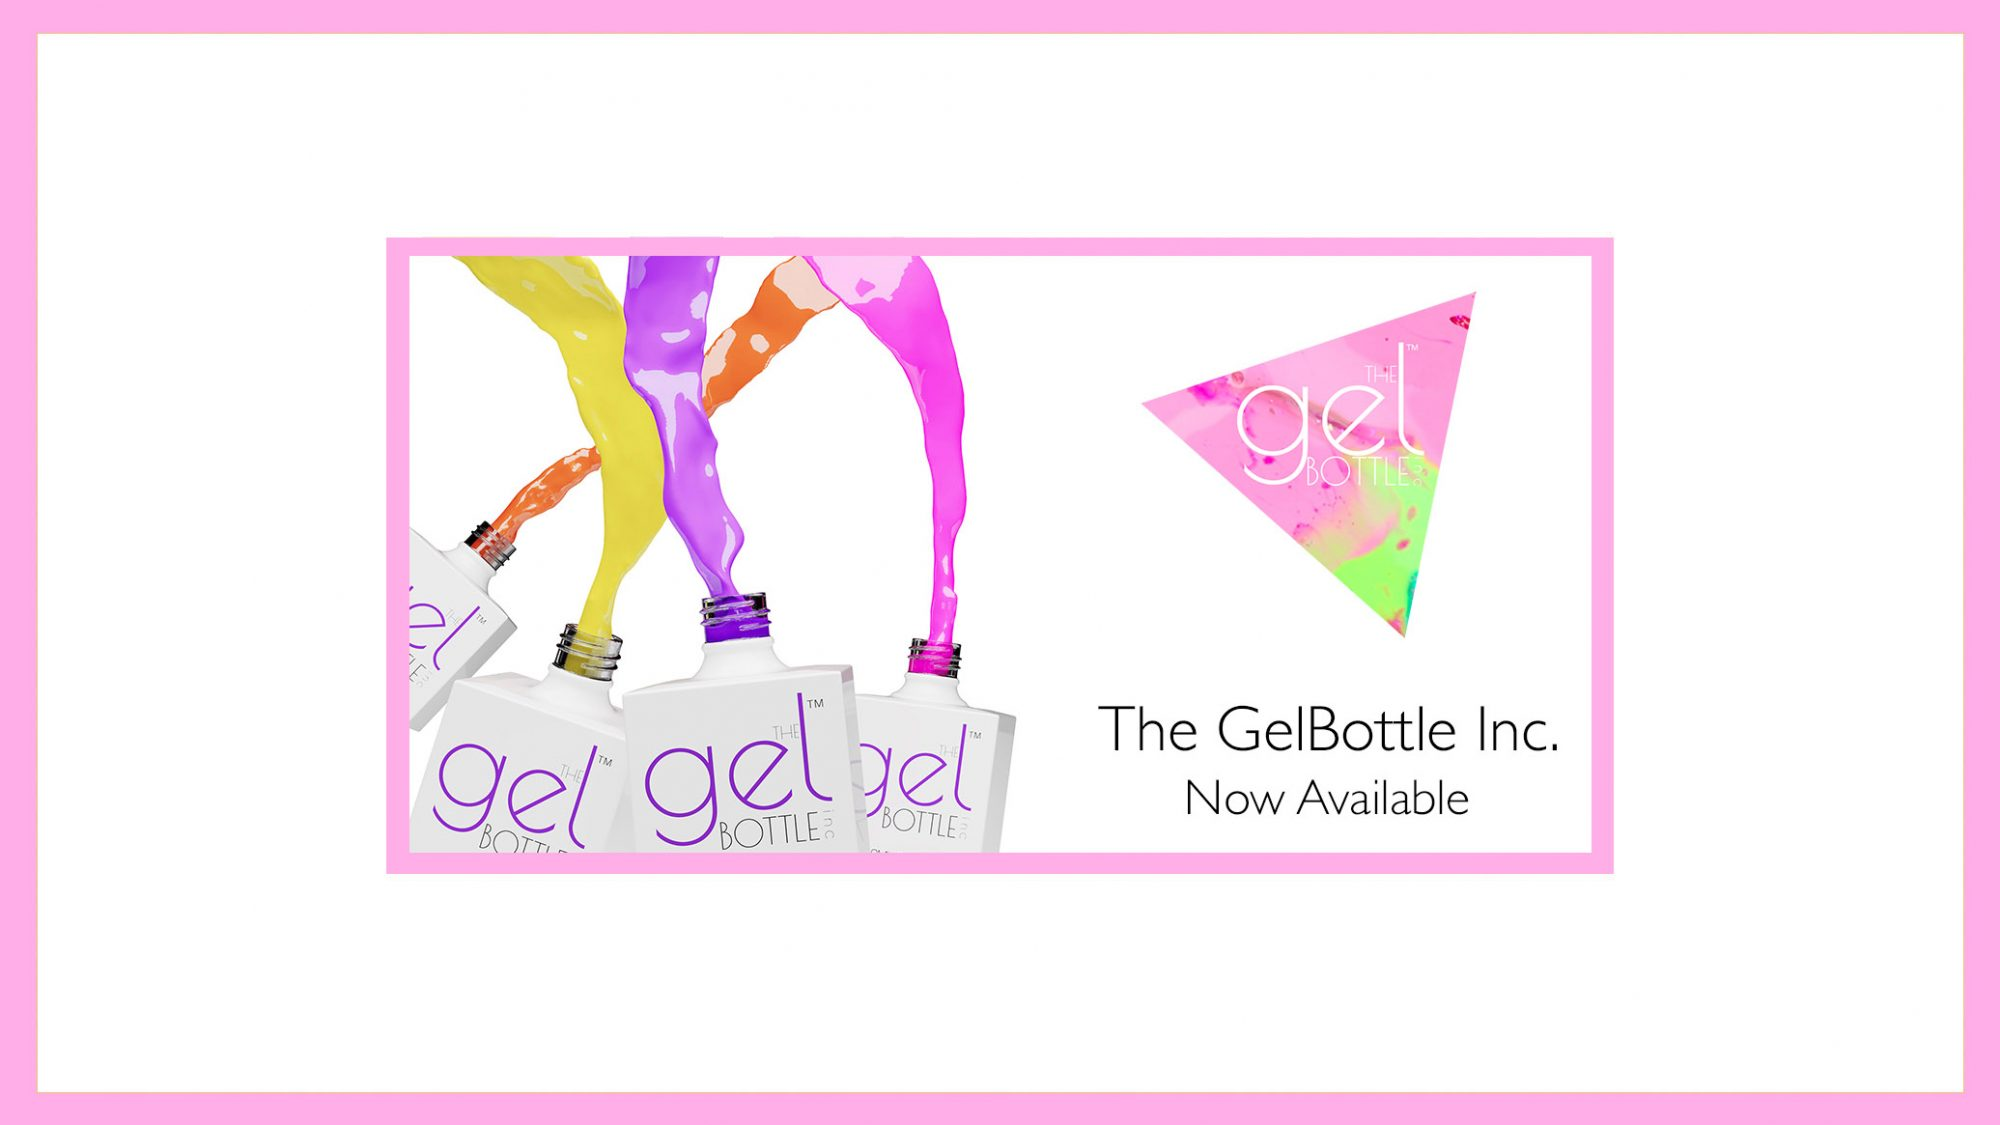 GelBottle Inc. Now Available at Frontlinestyle